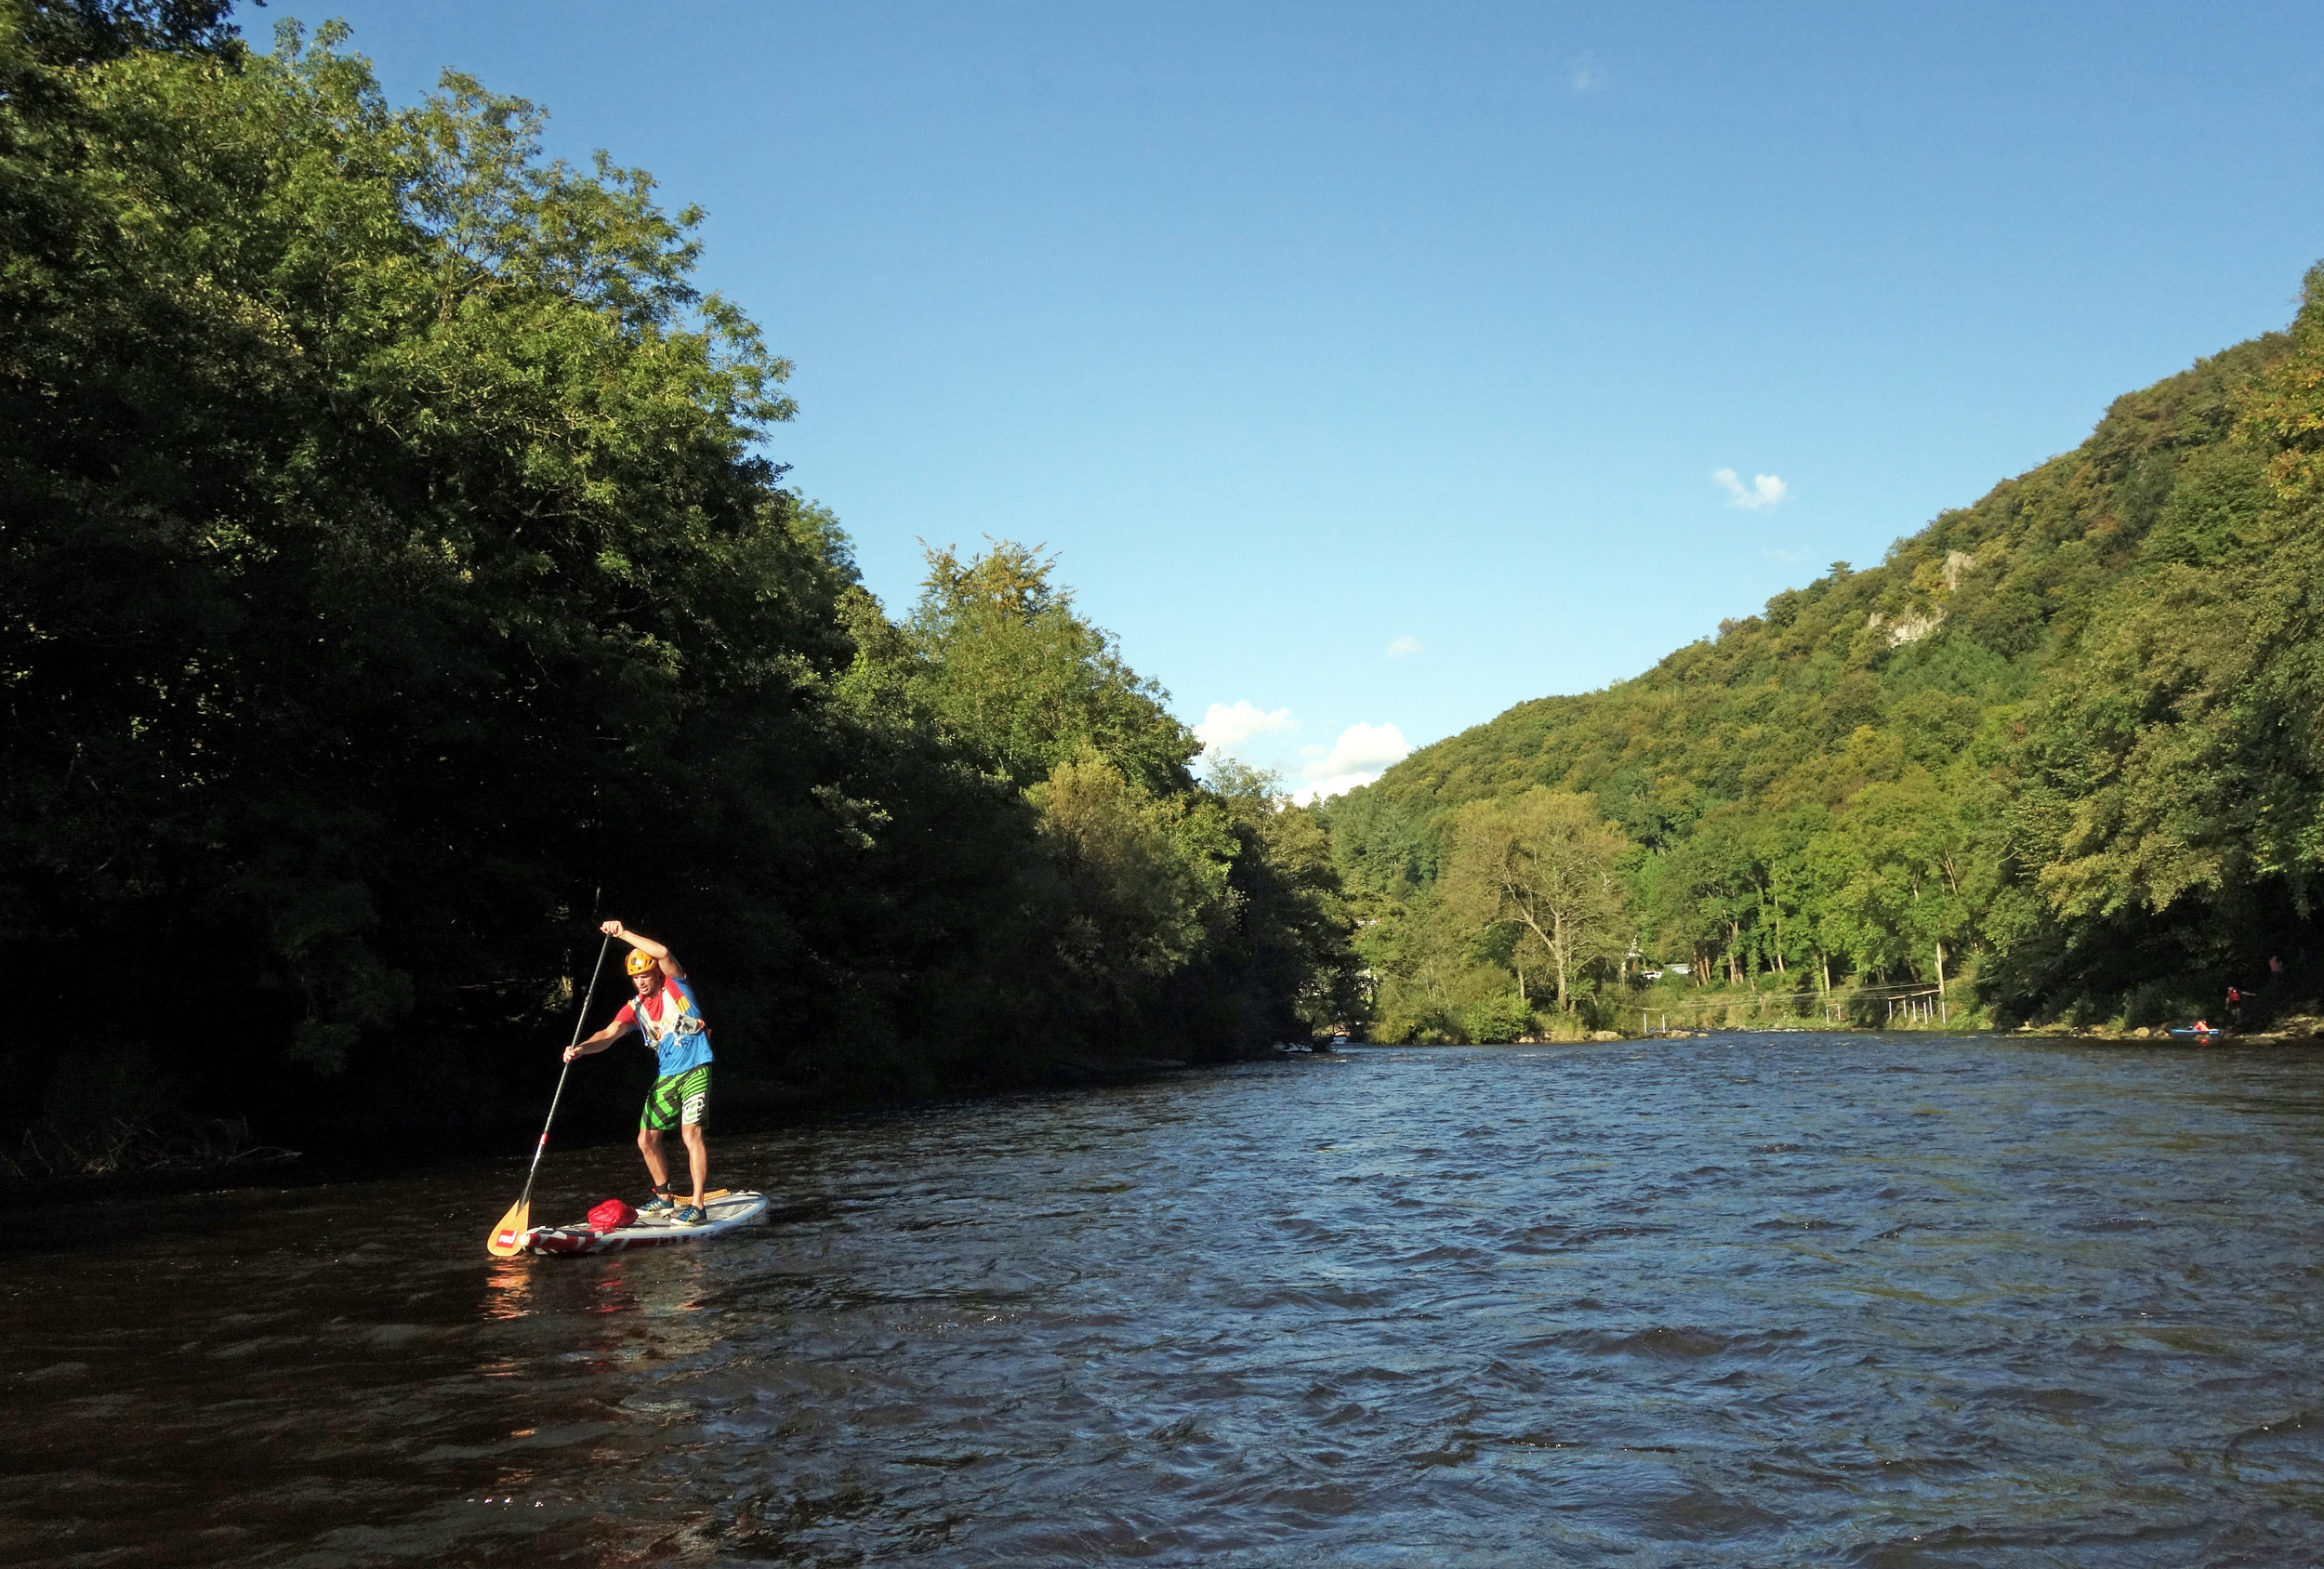 Just downstream of the rapids at Symonds Yat, river Wye